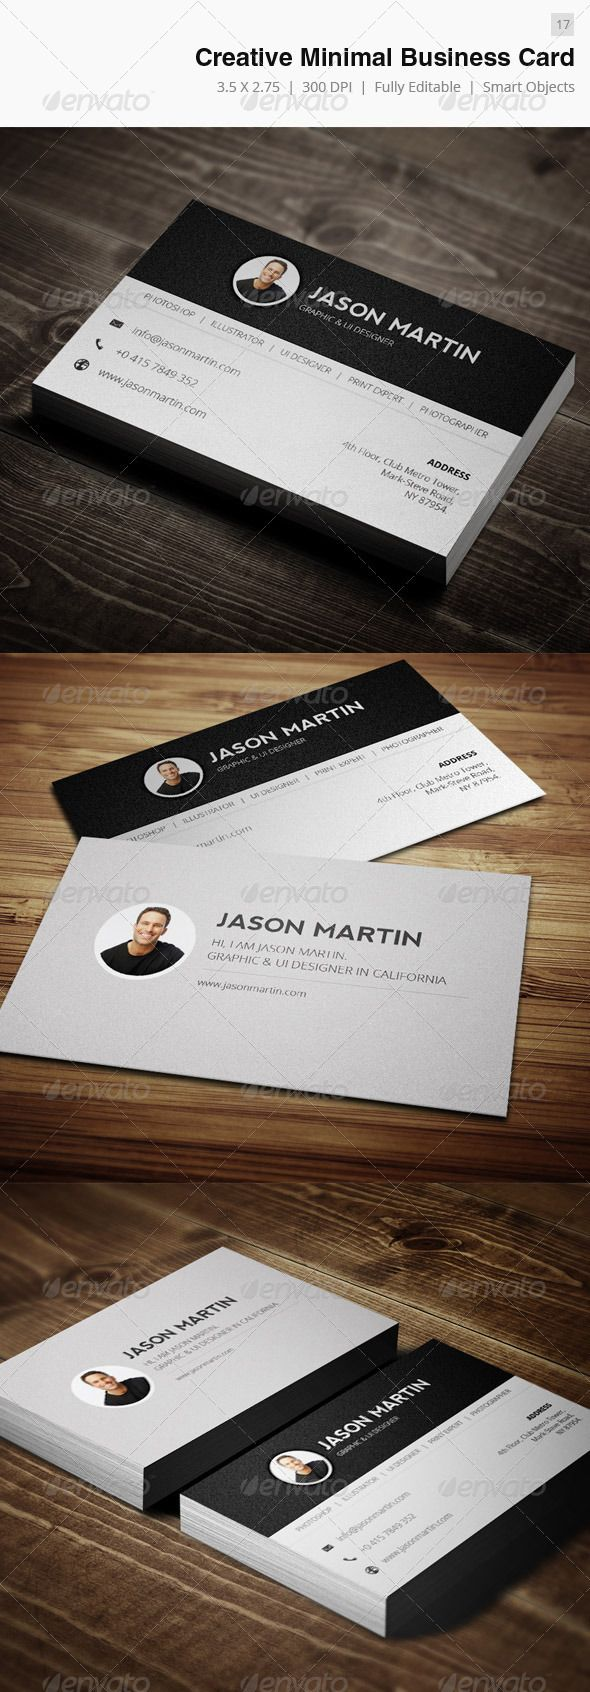 59 best business cards images on pinterest business cards minimal creative business card 17 magicingreecefo Choice Image